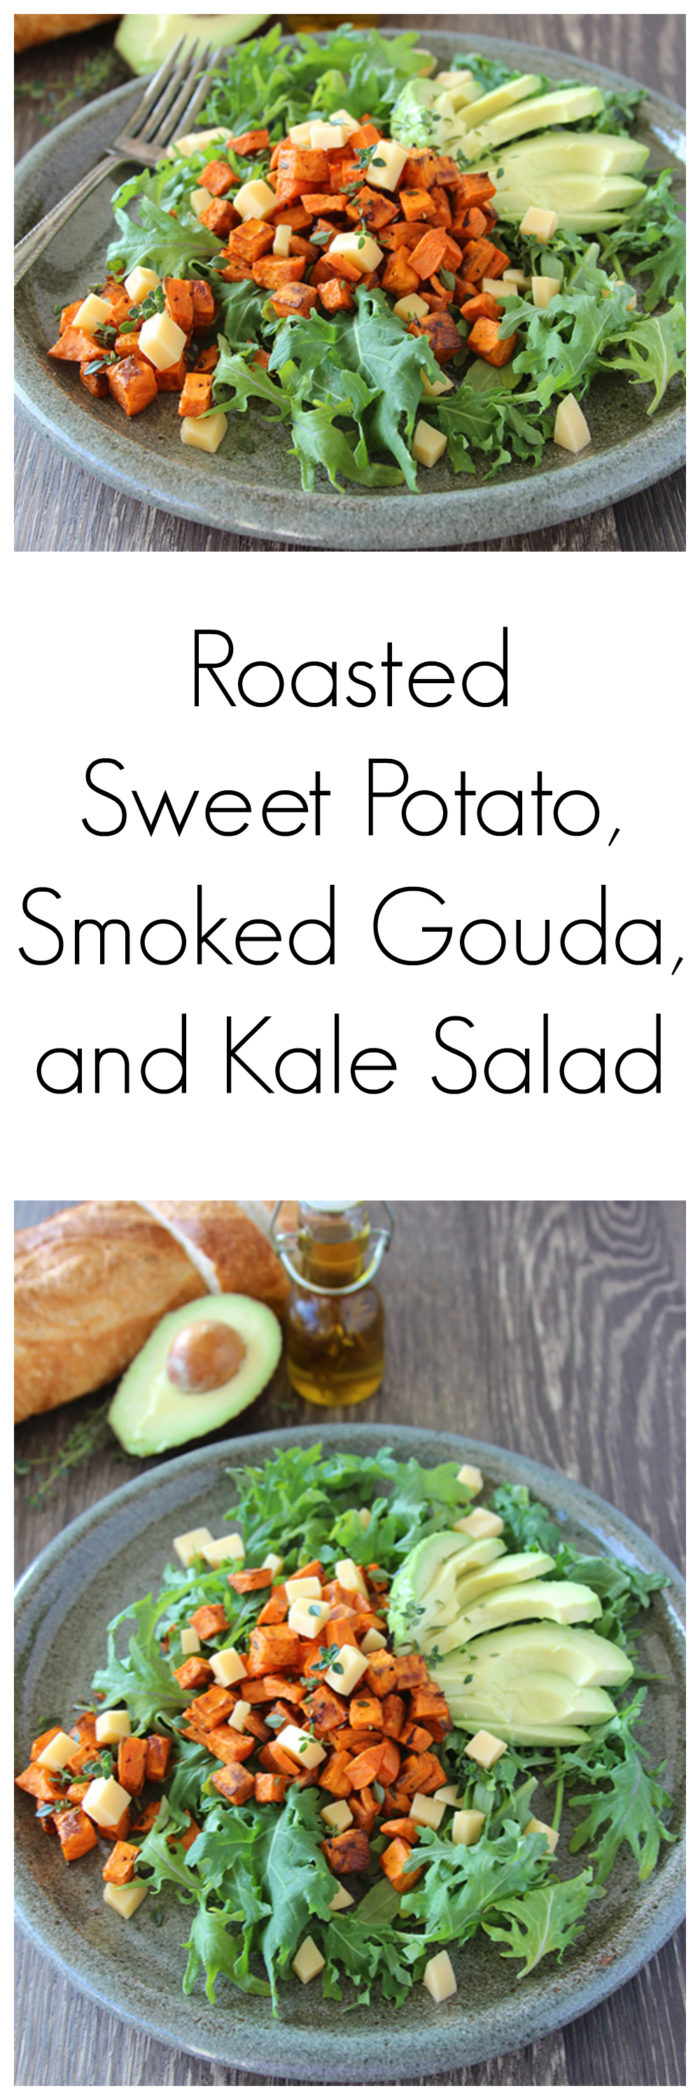 Roasted Sweet Potato, Smoked Gouda, and Kale Salad is a delightful combination of flavors! www.cookingwithruthie.com